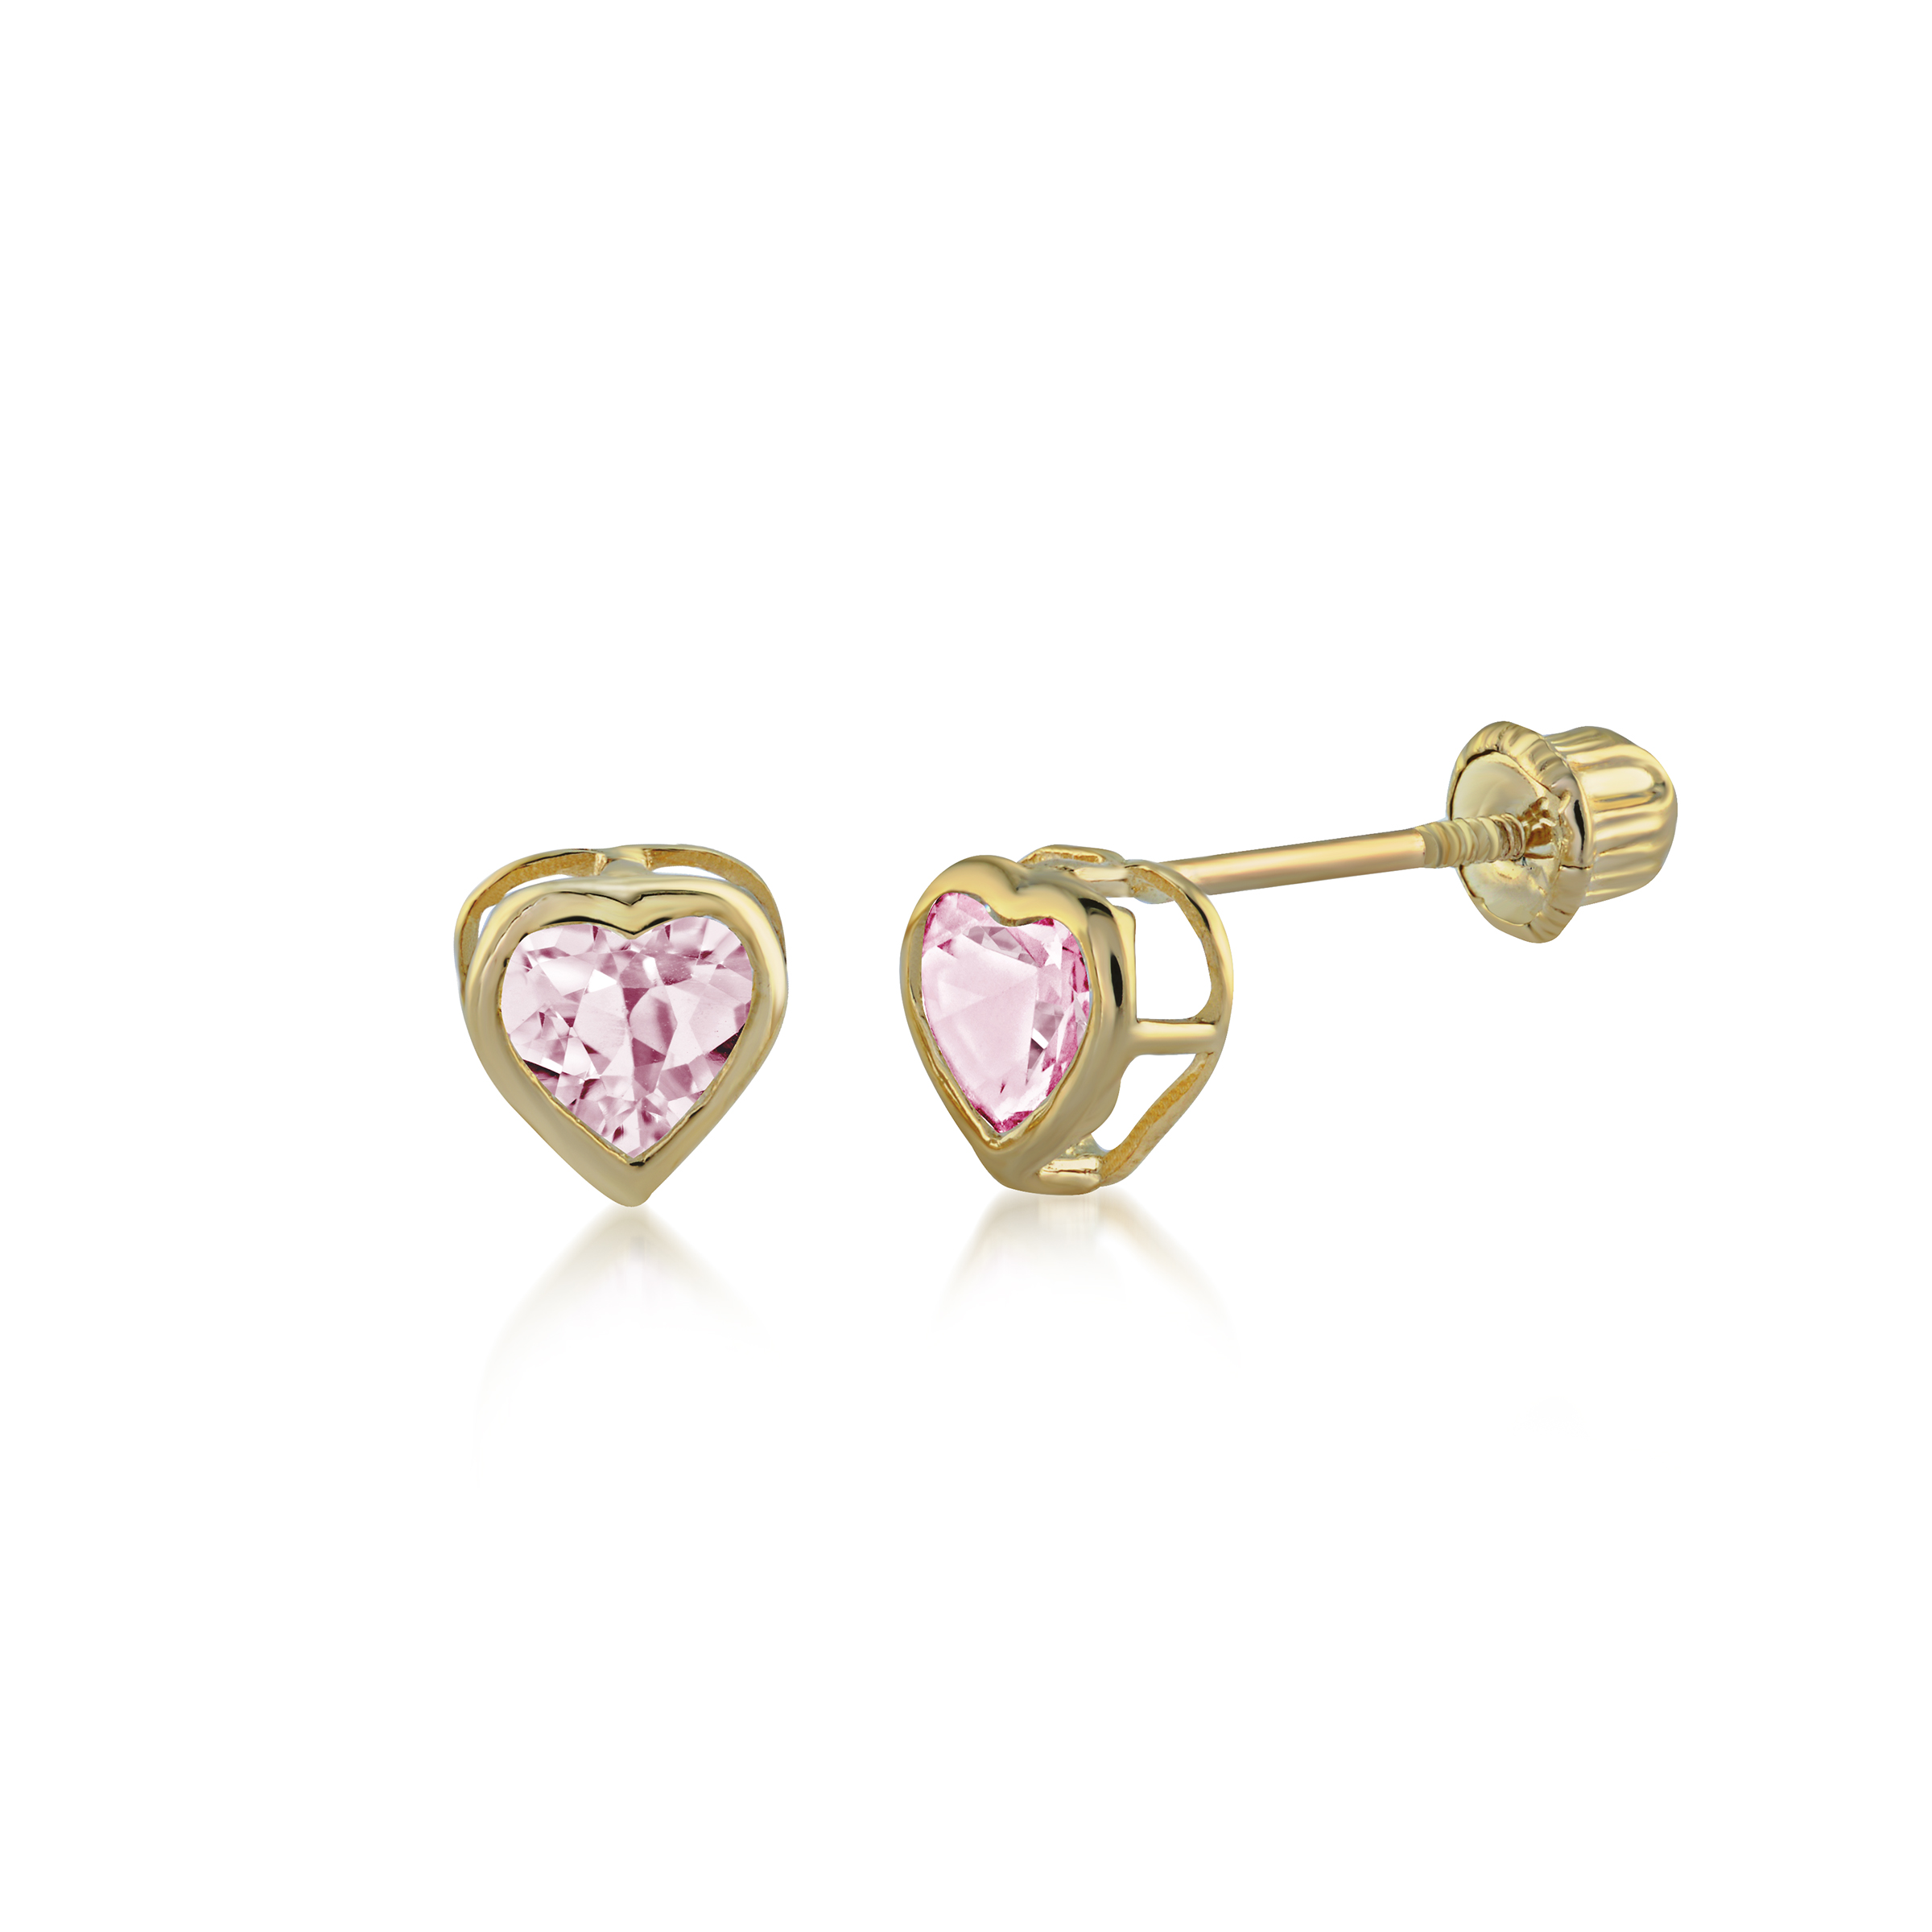 Heart earrings for kids - 14K yellow Gold & pink cubic zirconia